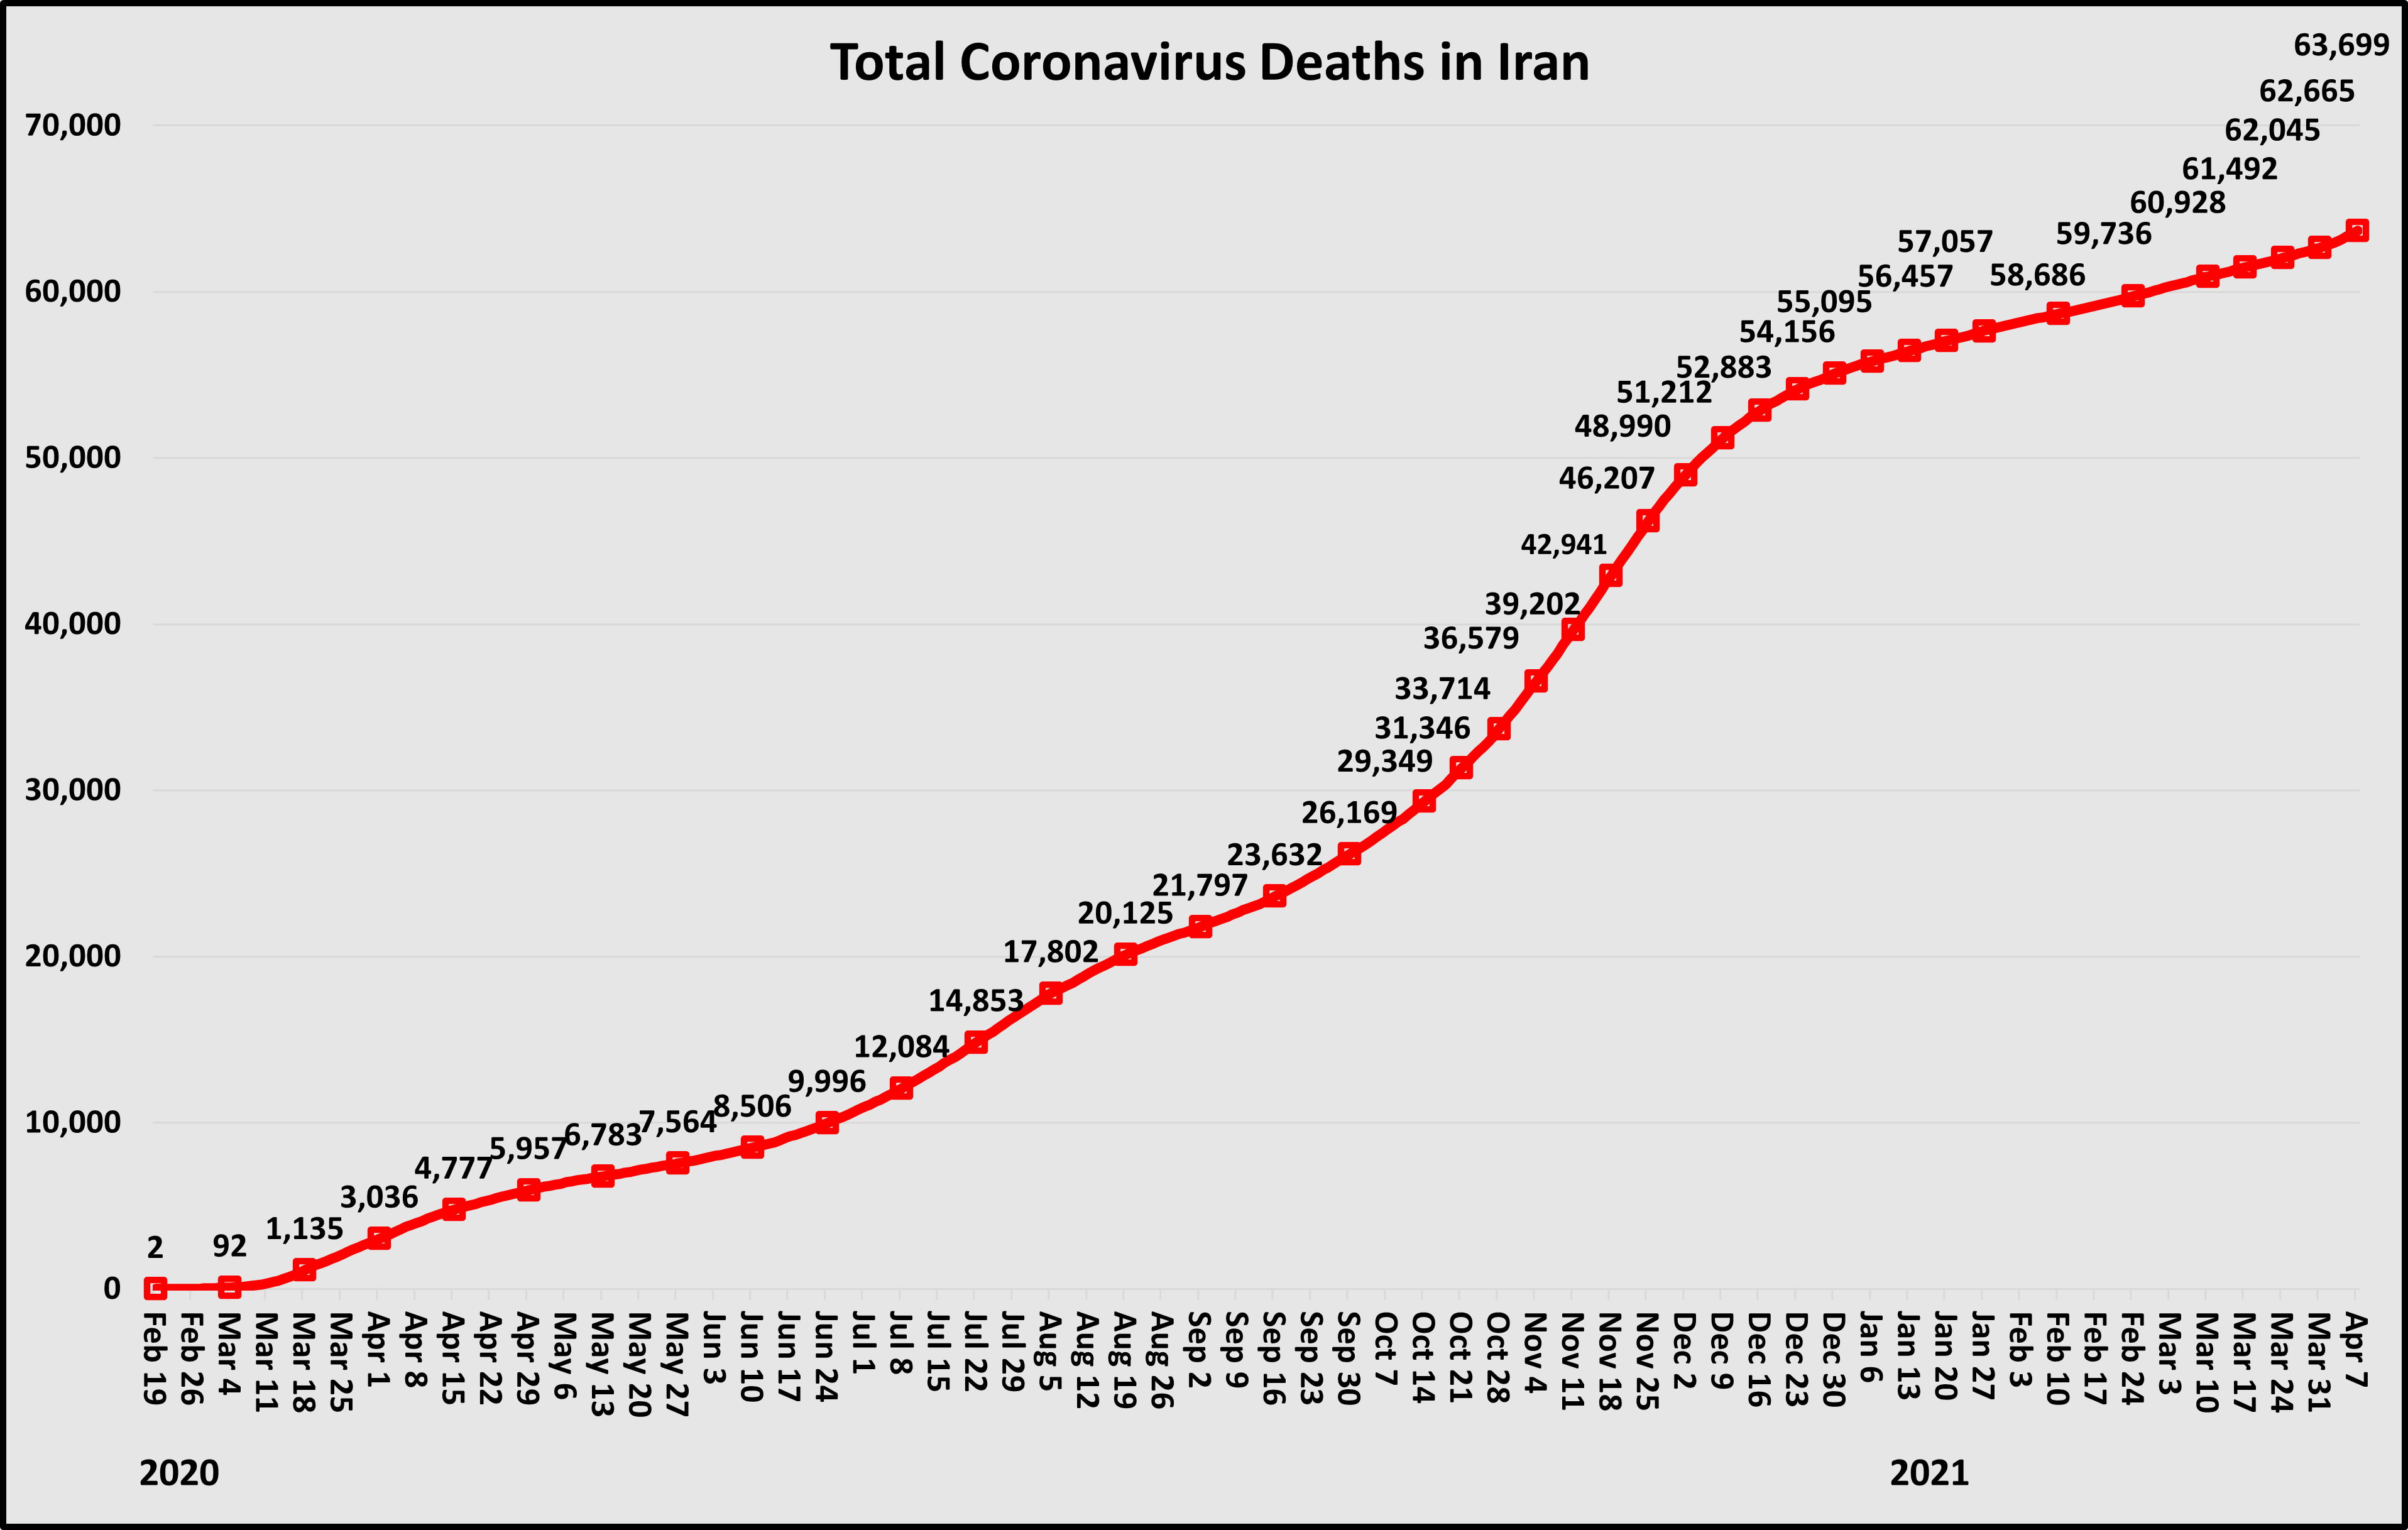 Total COVID deaths in Iran